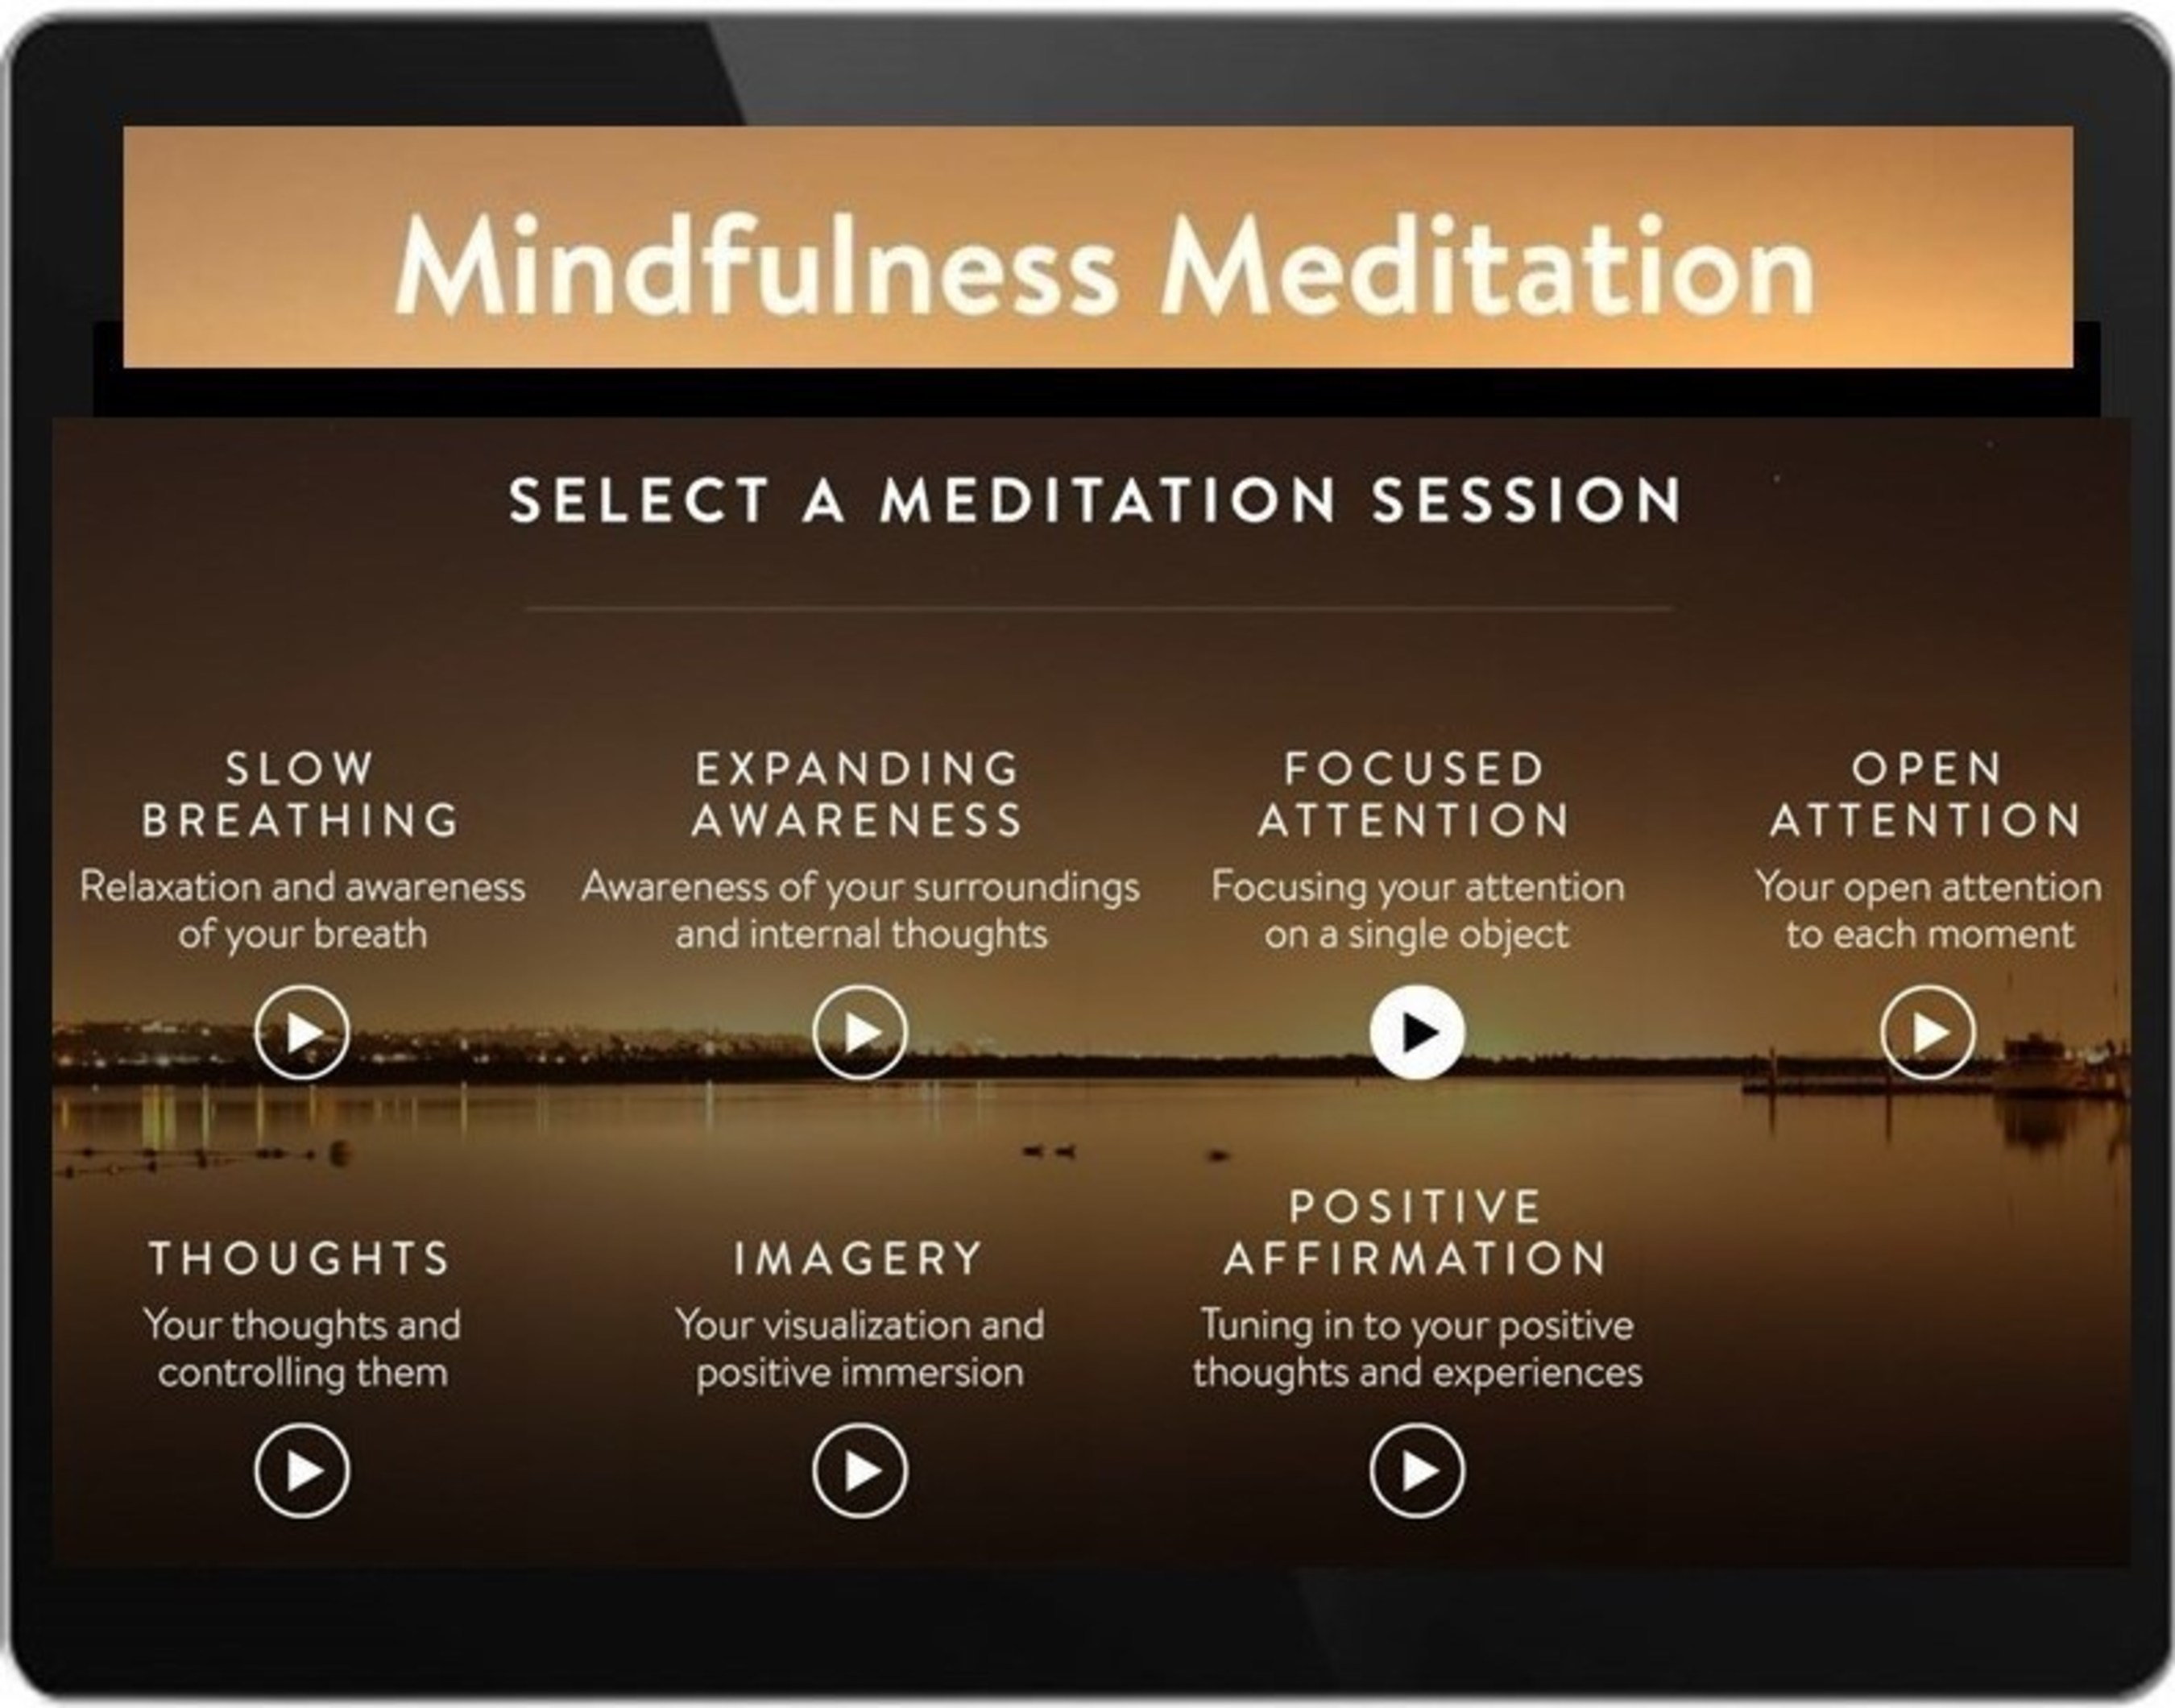 Expanding Mindfulness Meditation to Include Brain Science Insights in an Elegant and Simple App